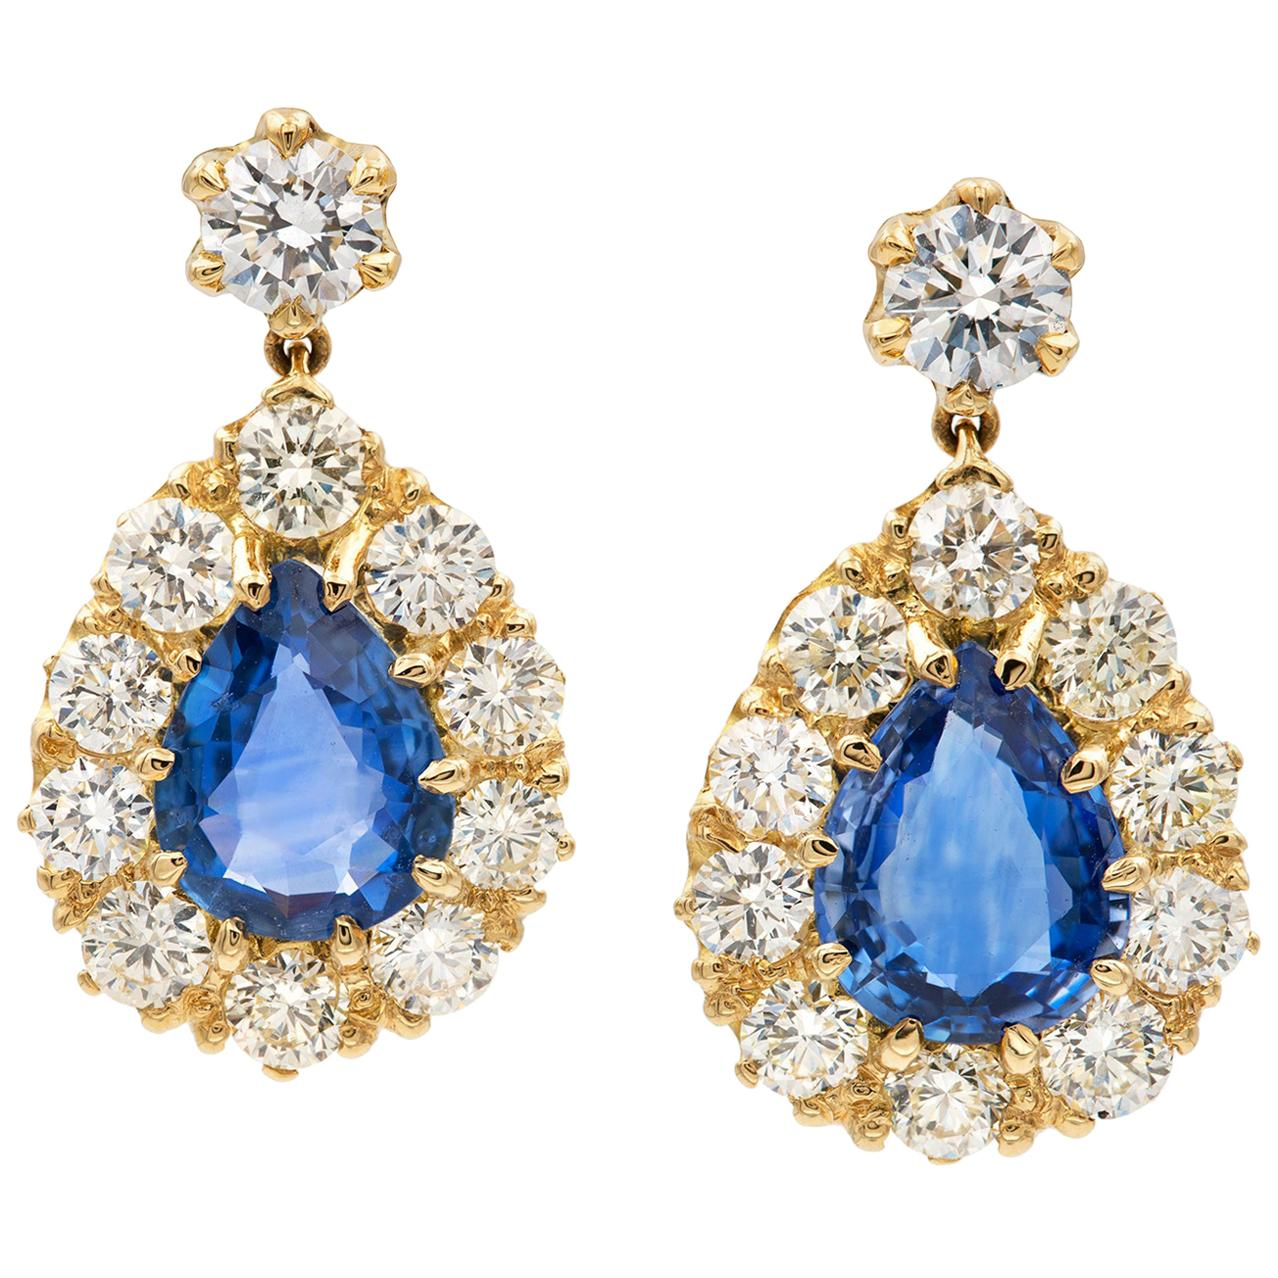 Pair of Sapphire and Diamond Drop Earring